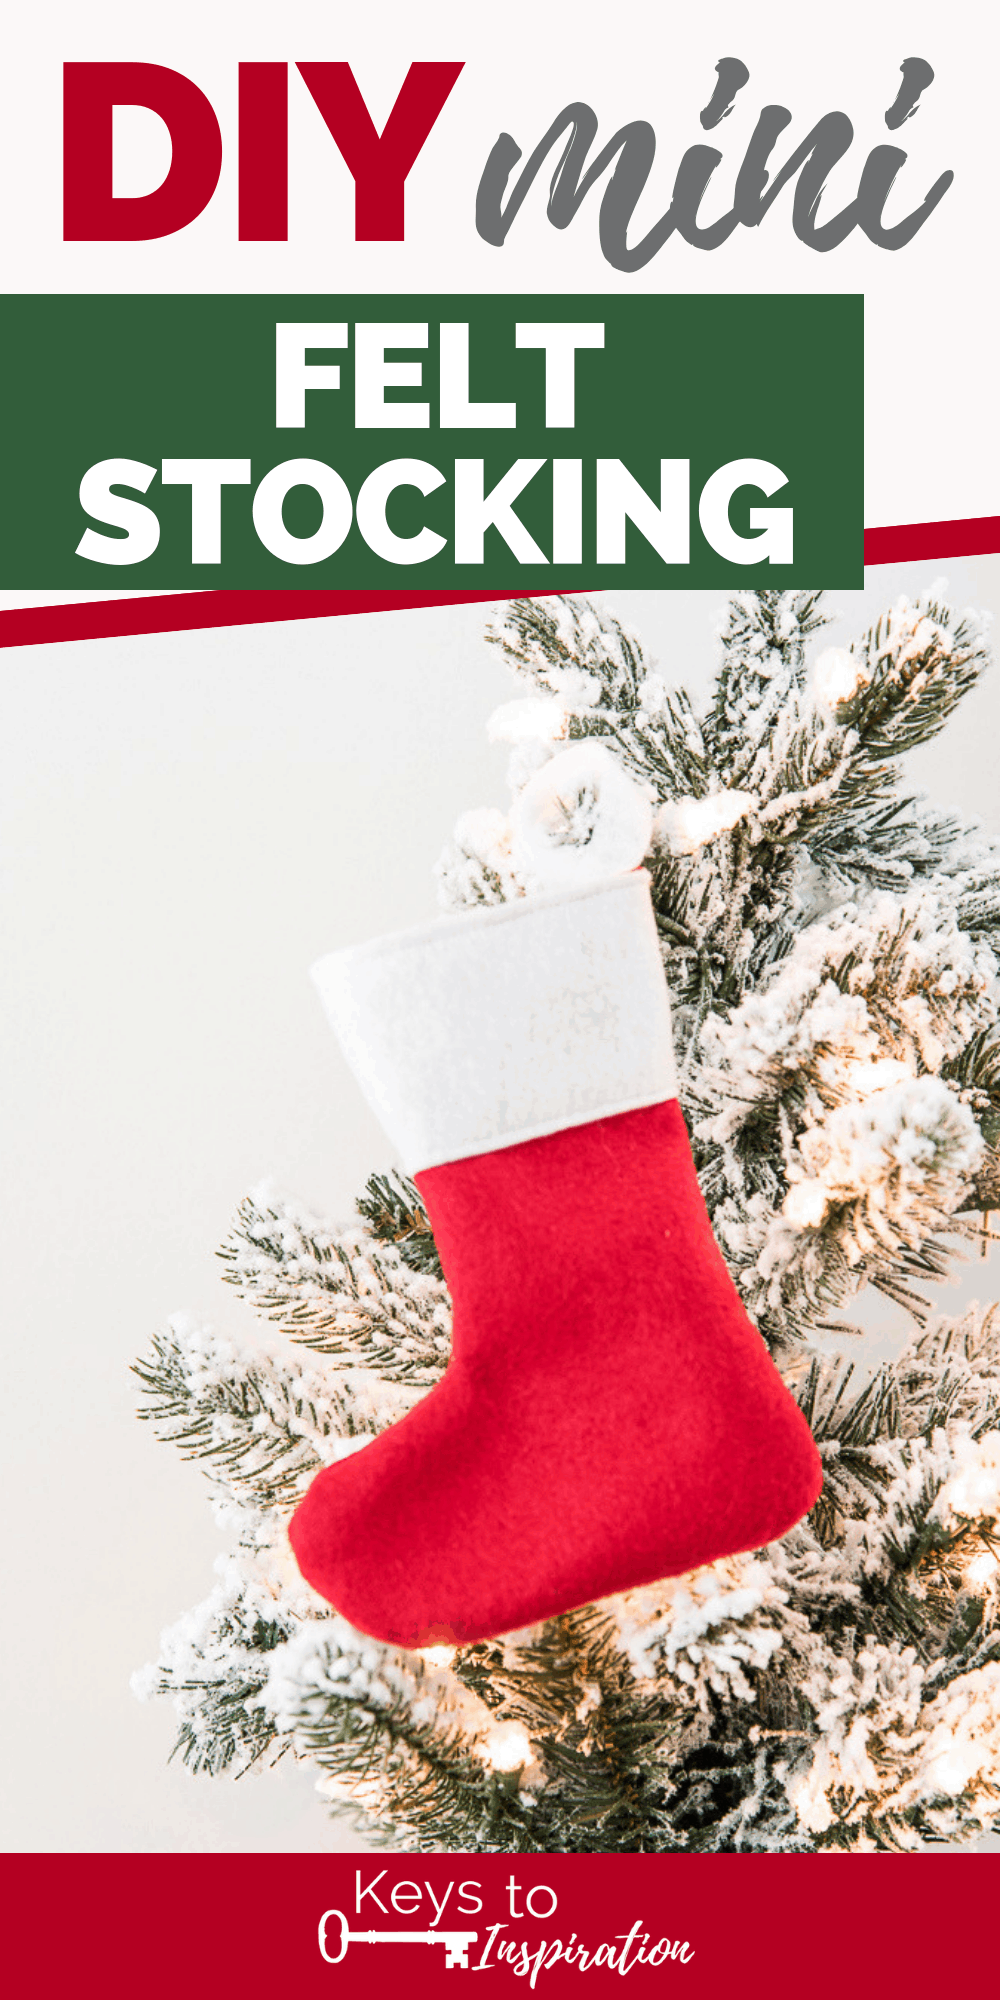 red mini felt Christmas stocking on flocked Christmas tree